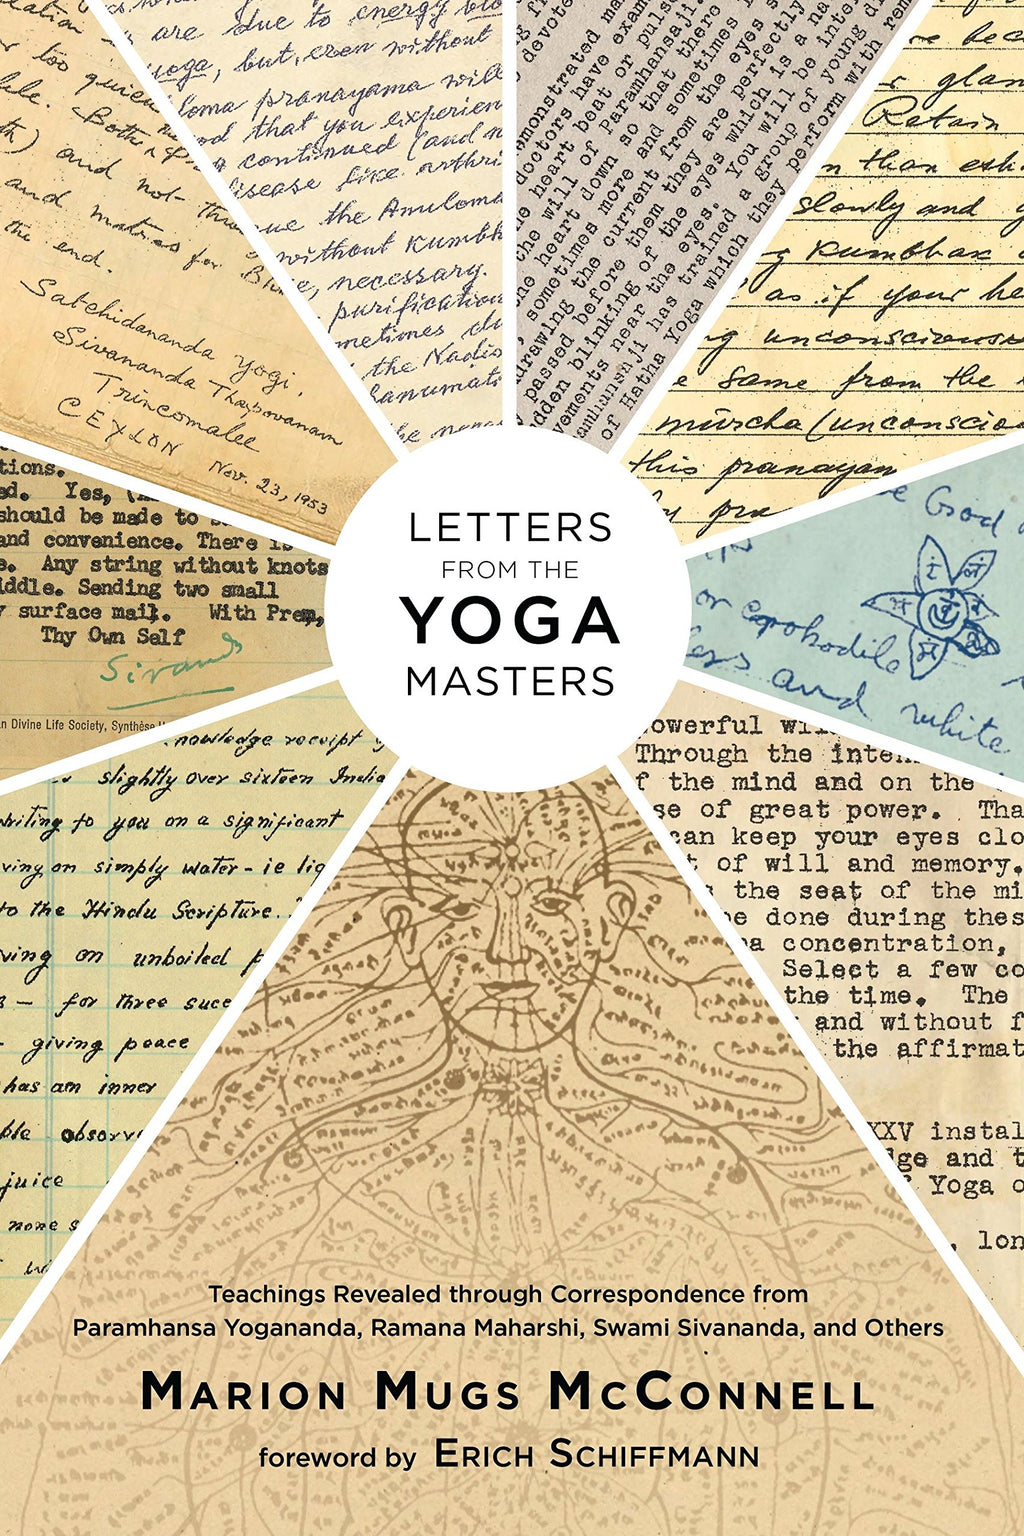 Letters from the Yoga Masters by Marion Mugs McConnell